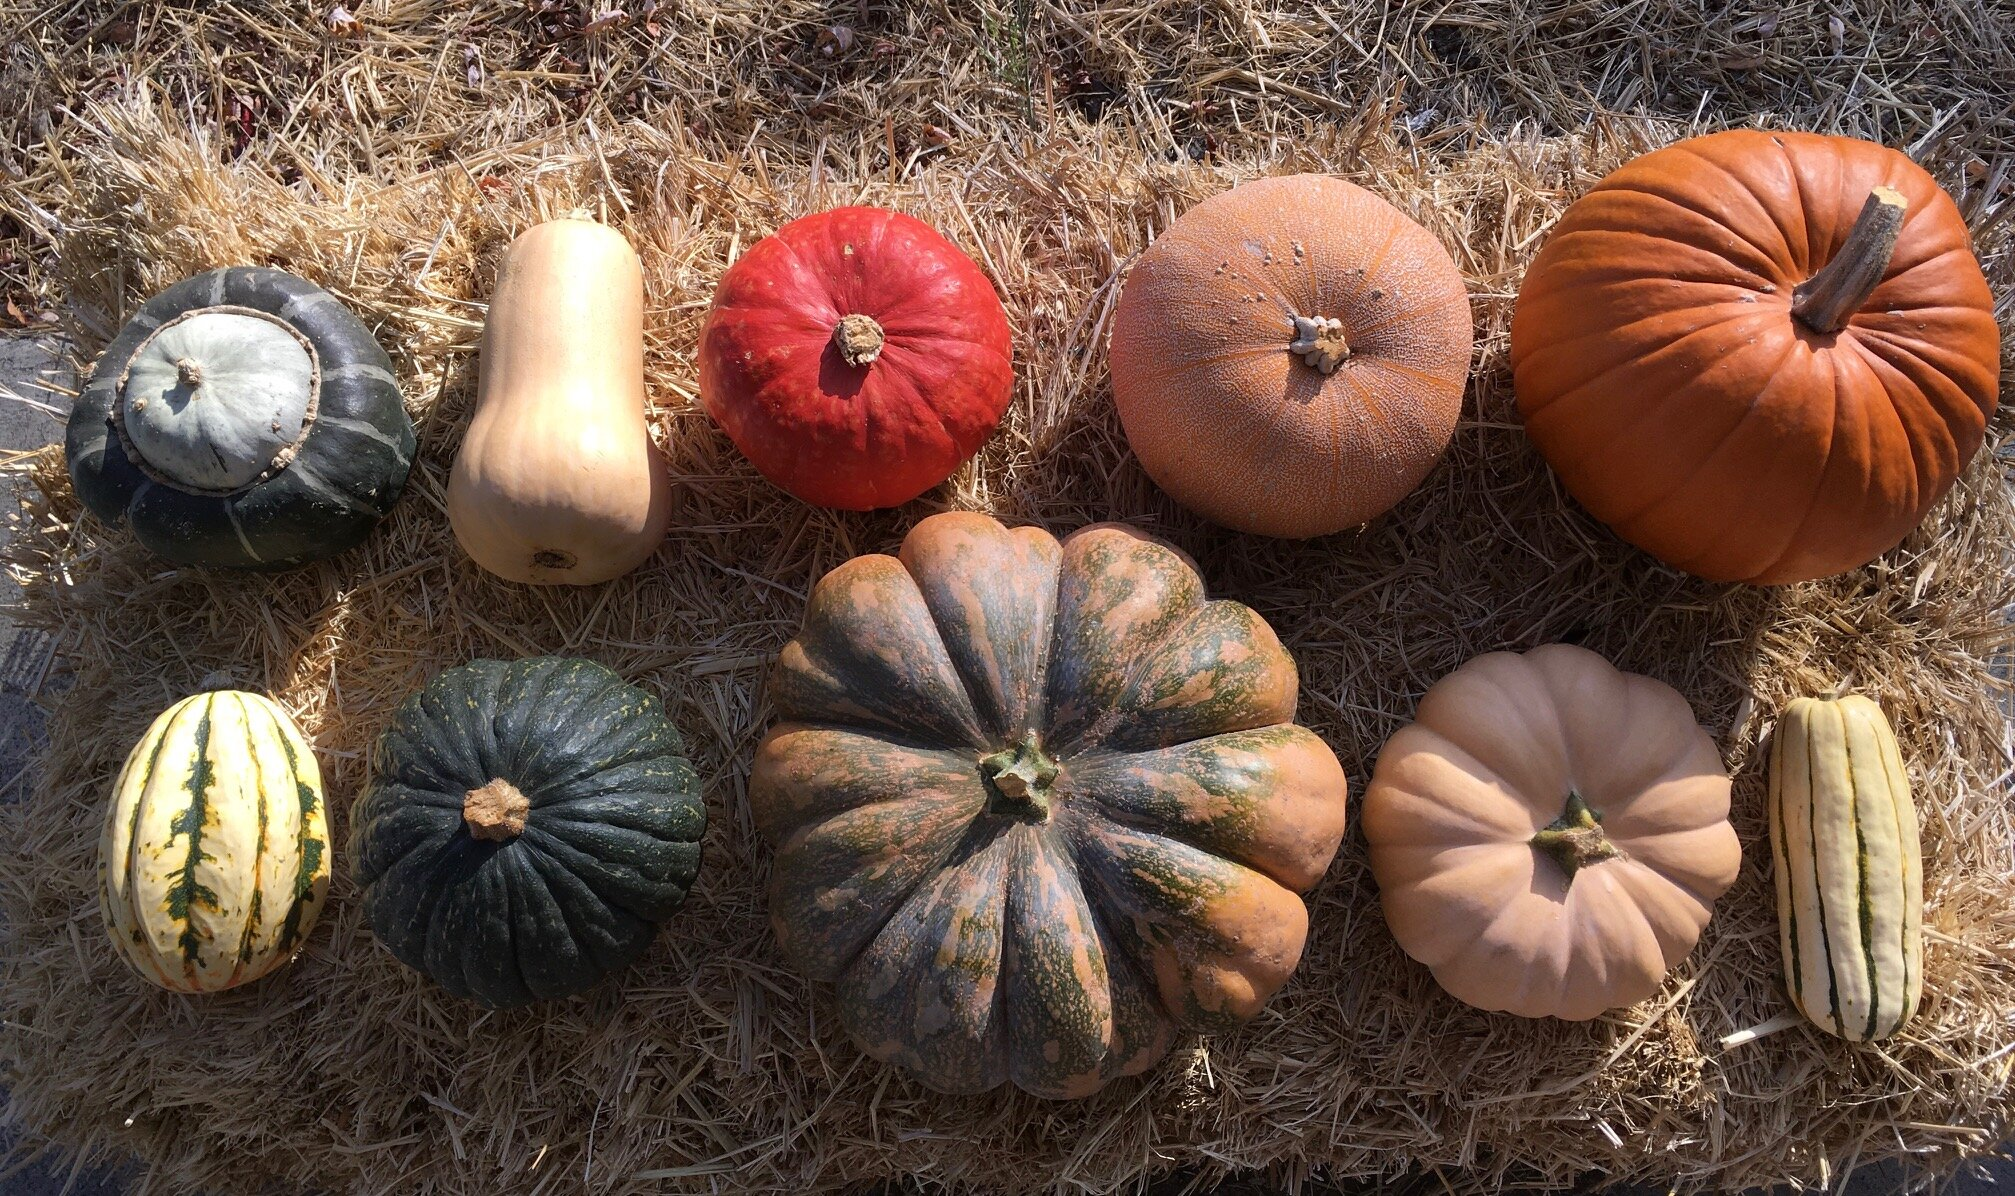 2019's Winter Squash varieties: Top Row from L to R: Bonbon Buttercup, Butternut, Sunshine Kabocha, Winter Luxury Pie Pumpkin, Racer Jack-O-Lanter Pumpkin /// Bottom Row from L to R: Jester Acorn Squash, Tetsukabuto, Musque de Provence, Autumn Crown, Delicata